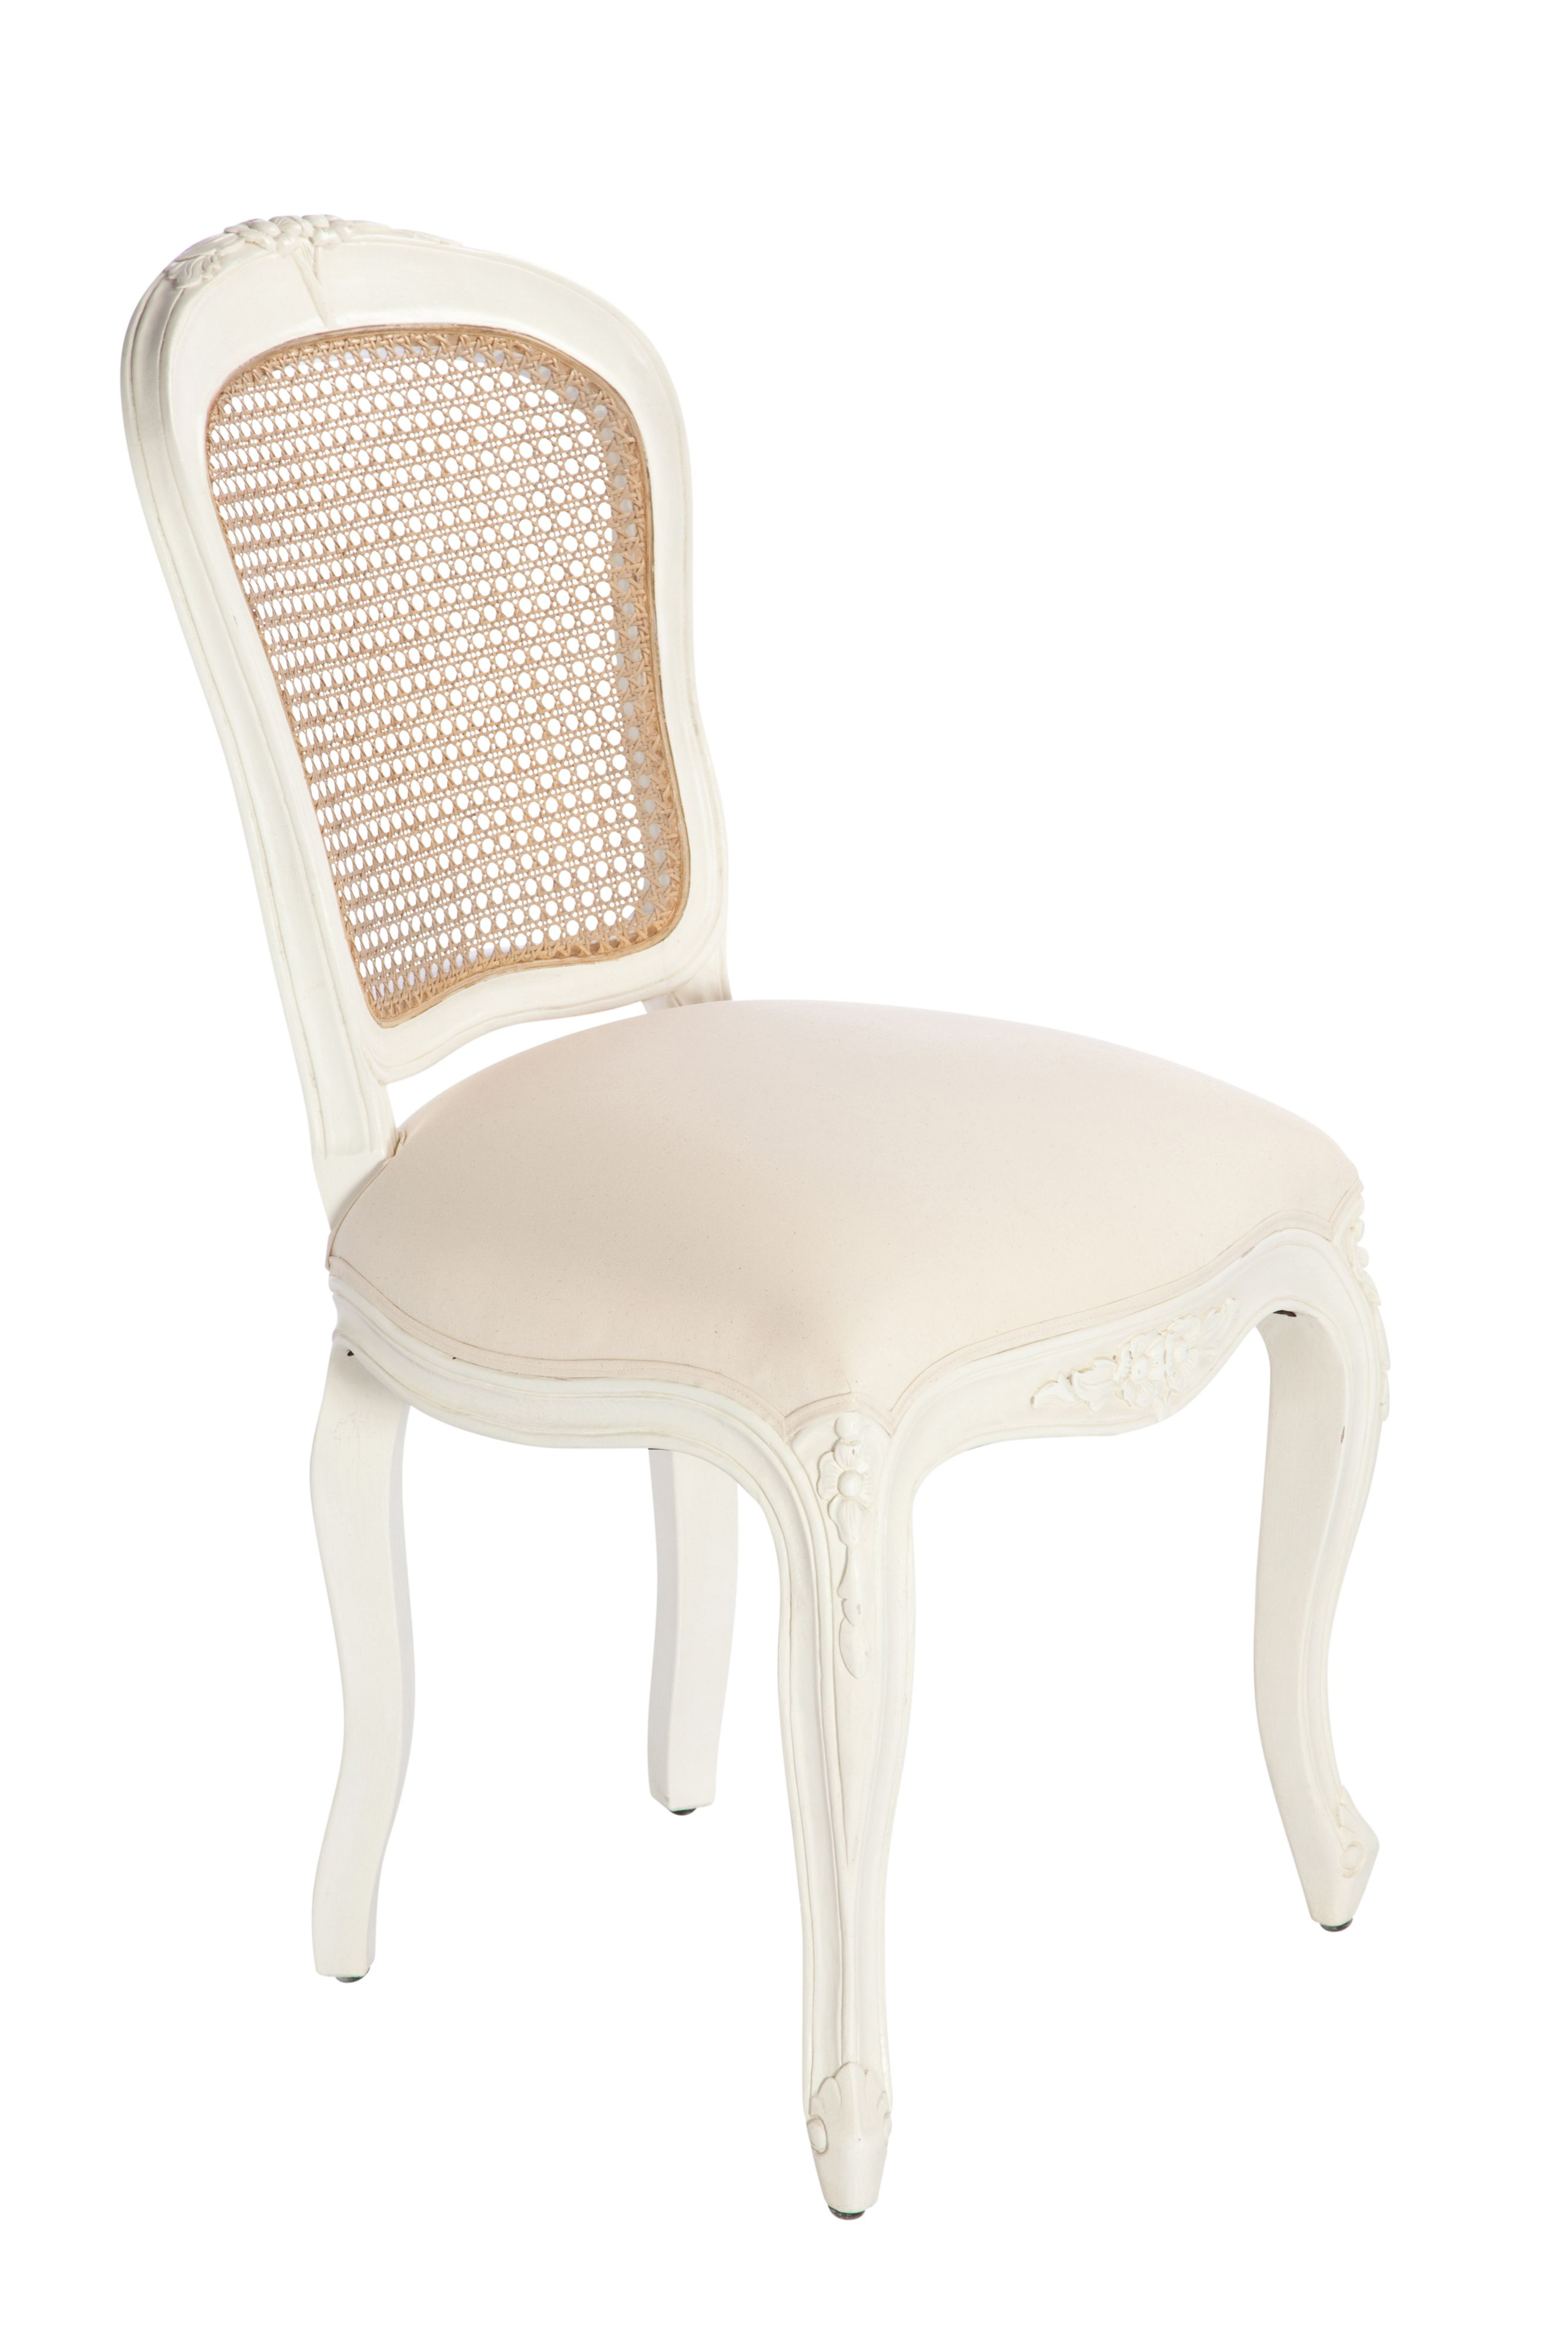 SHABBY CHIC DINING CHAIR COVER Chair Pads & Cushions